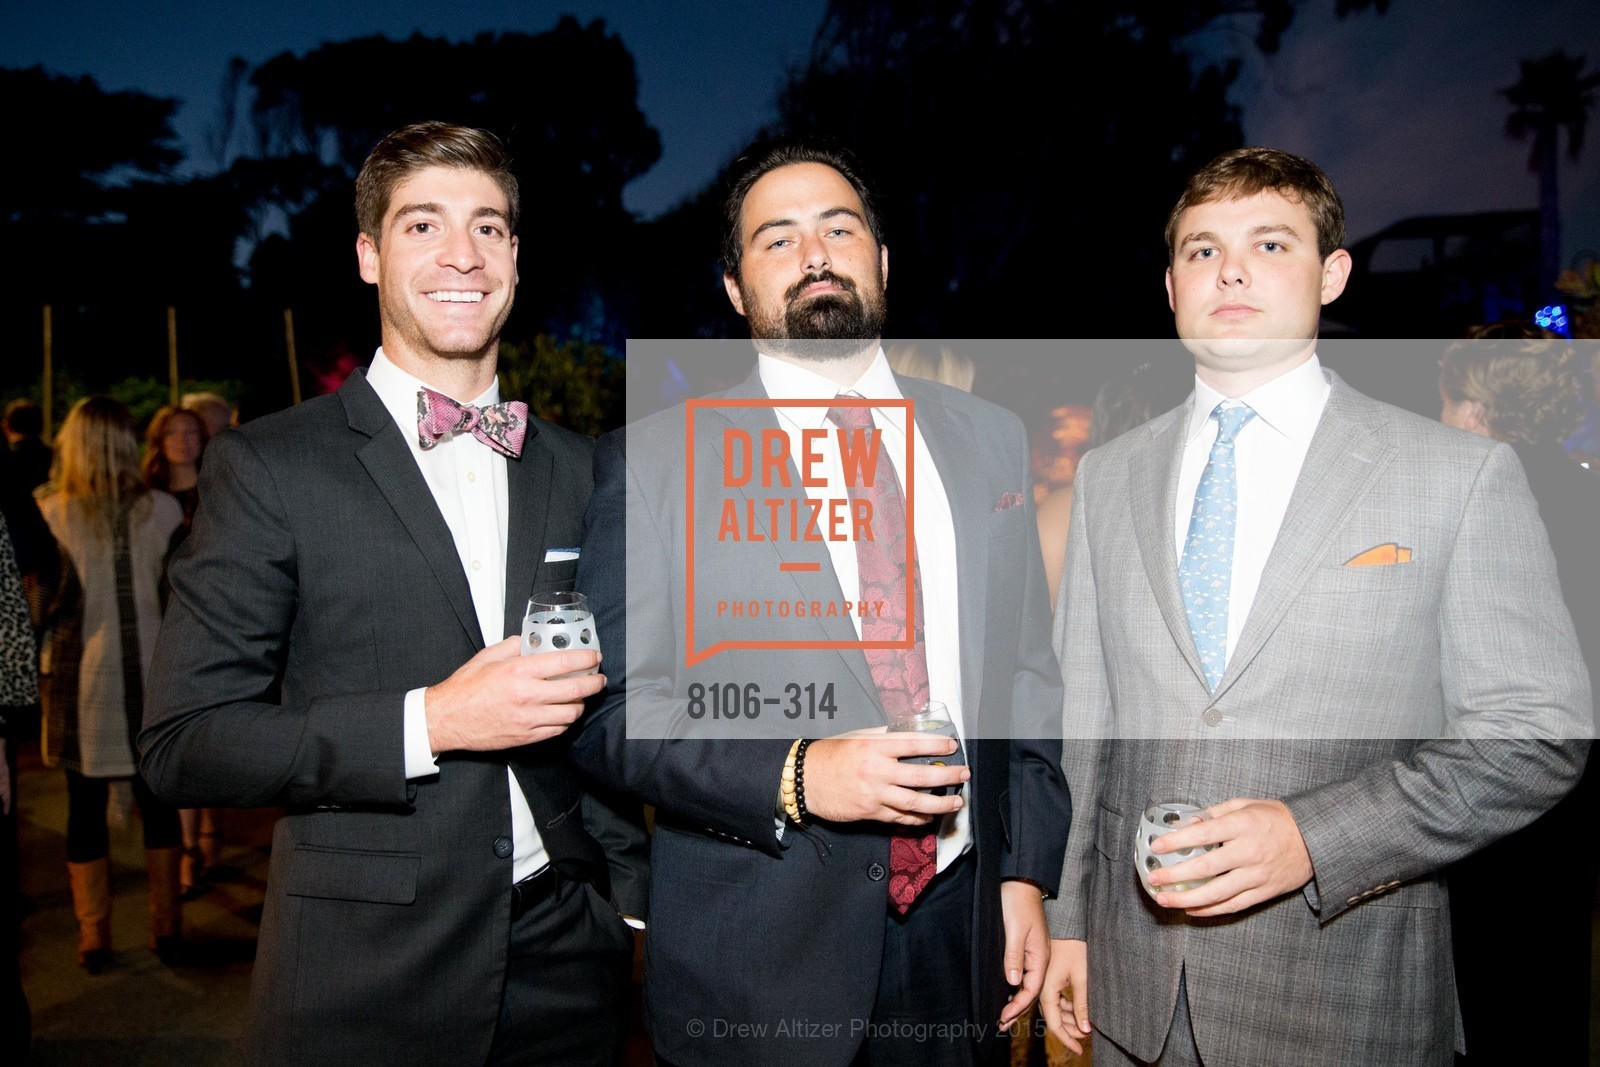 Clay Jameson, John Mutlow, Will Andereck, San Francisco Zoo Fur Ball, San Francisco Zoo, September 25th, 2015,Drew Altizer, Drew Altizer Photography, full-service agency, private events, San Francisco photographer, photographer california